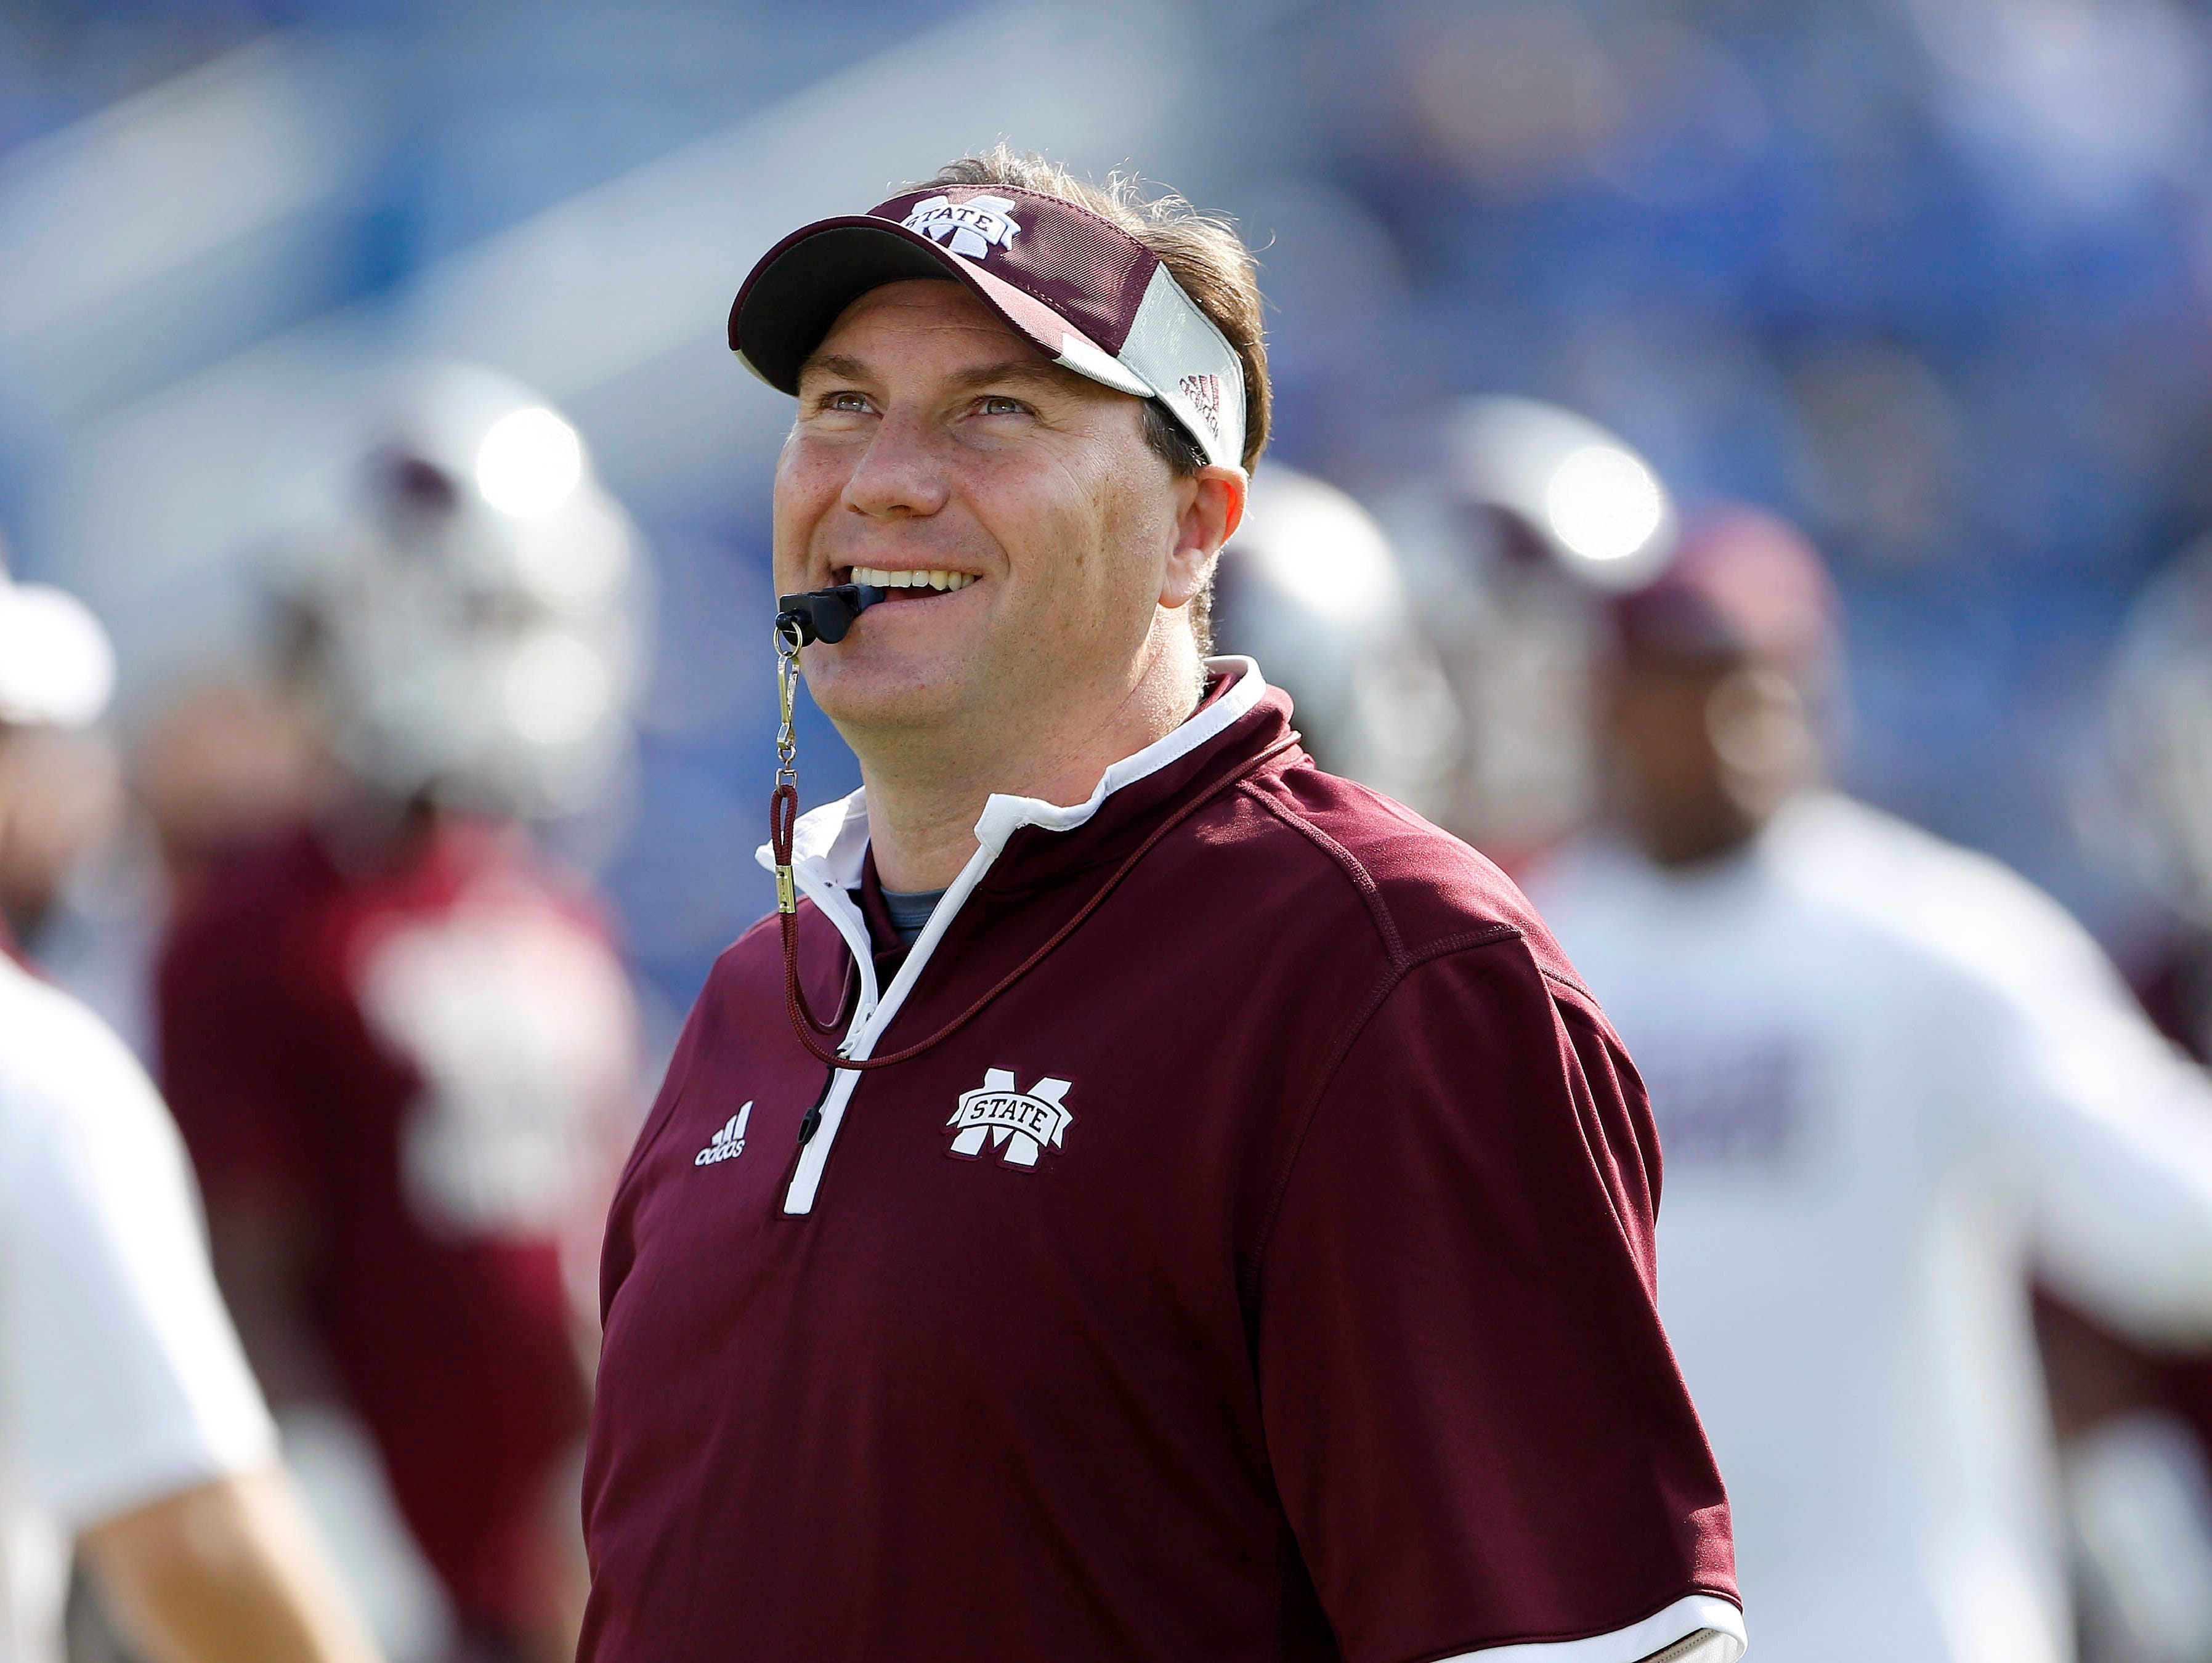 Oct 25, 2014; Lexington, KY, USA; Mississippi State Bulldogs head coach Dan Mullen before the game against the Kentucky Wildcats at Commonwealth Stadium. Mandatory Credit: Mark Zerof-USA TODAY Sports